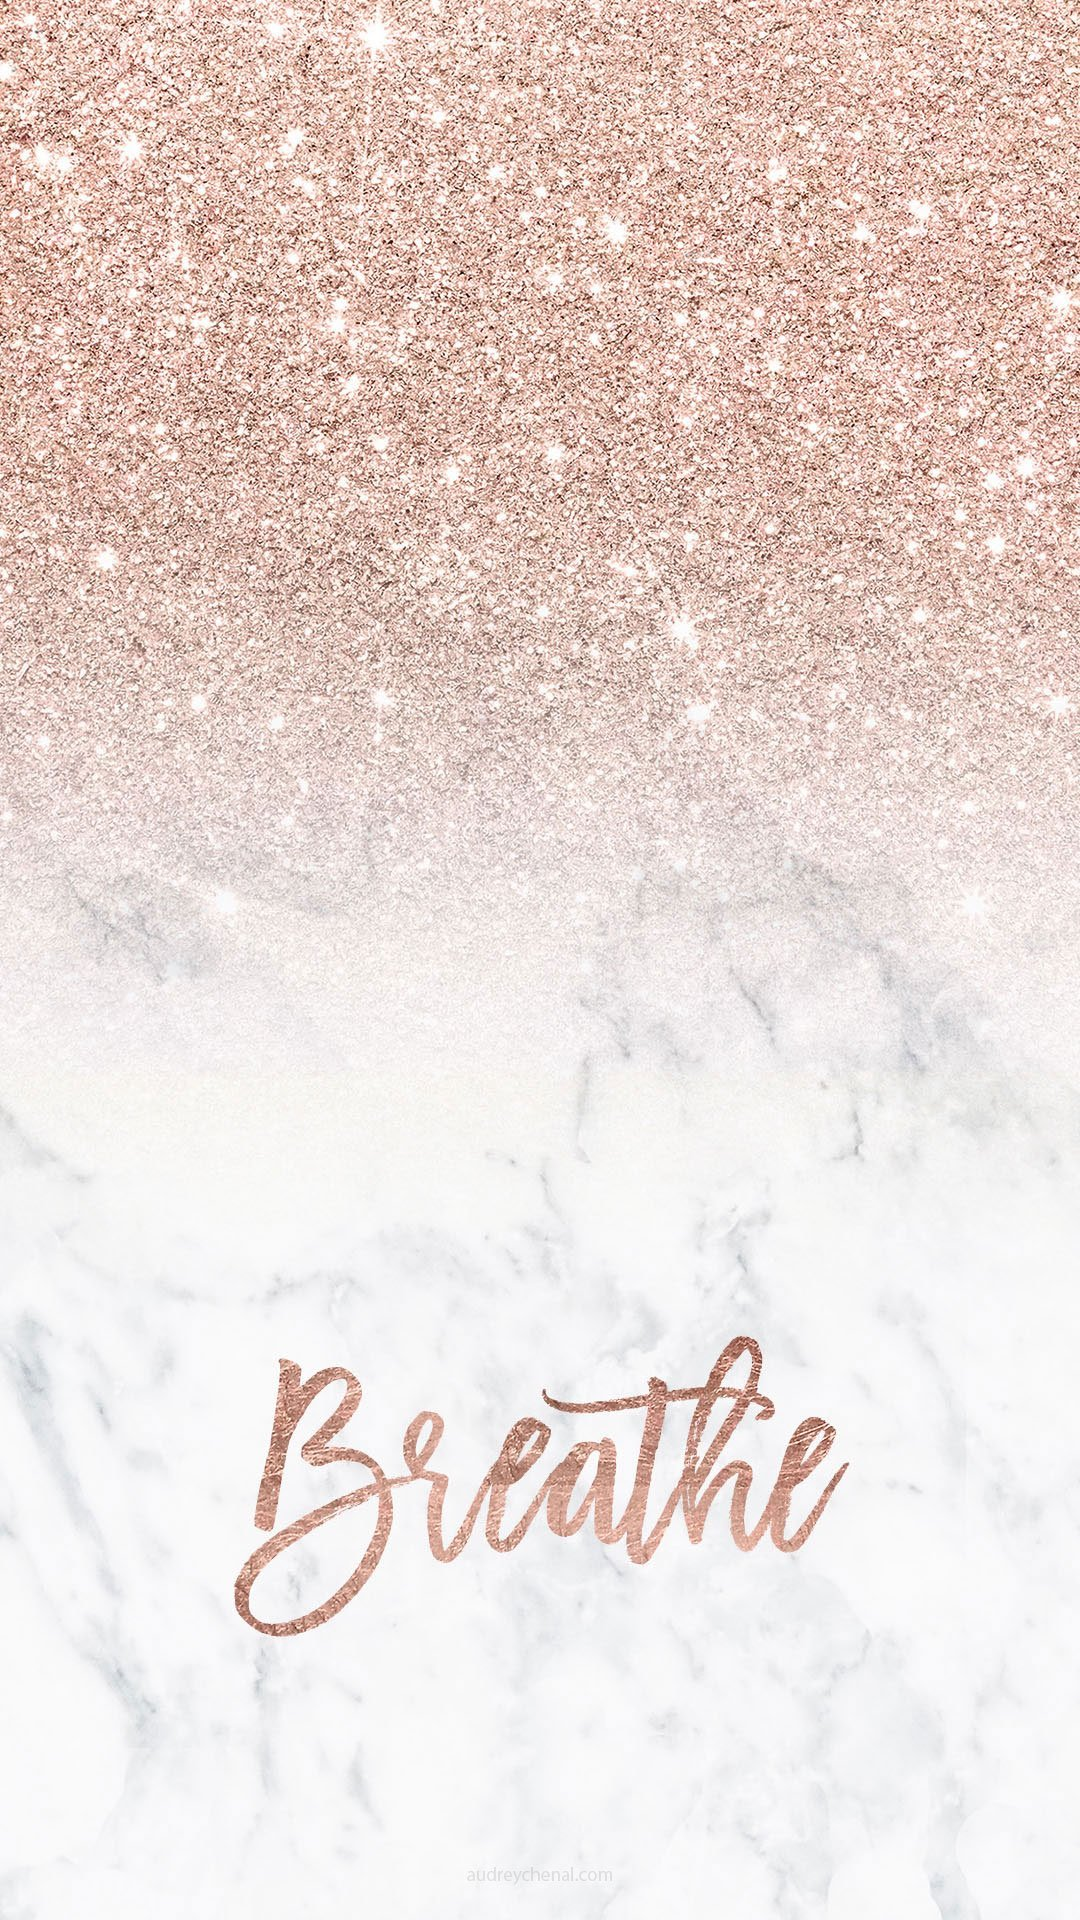 trendy-smartphone-wall-paper-rose-gold-breathe-glitter-ombre-white-marble-by-Audrey-Chenal